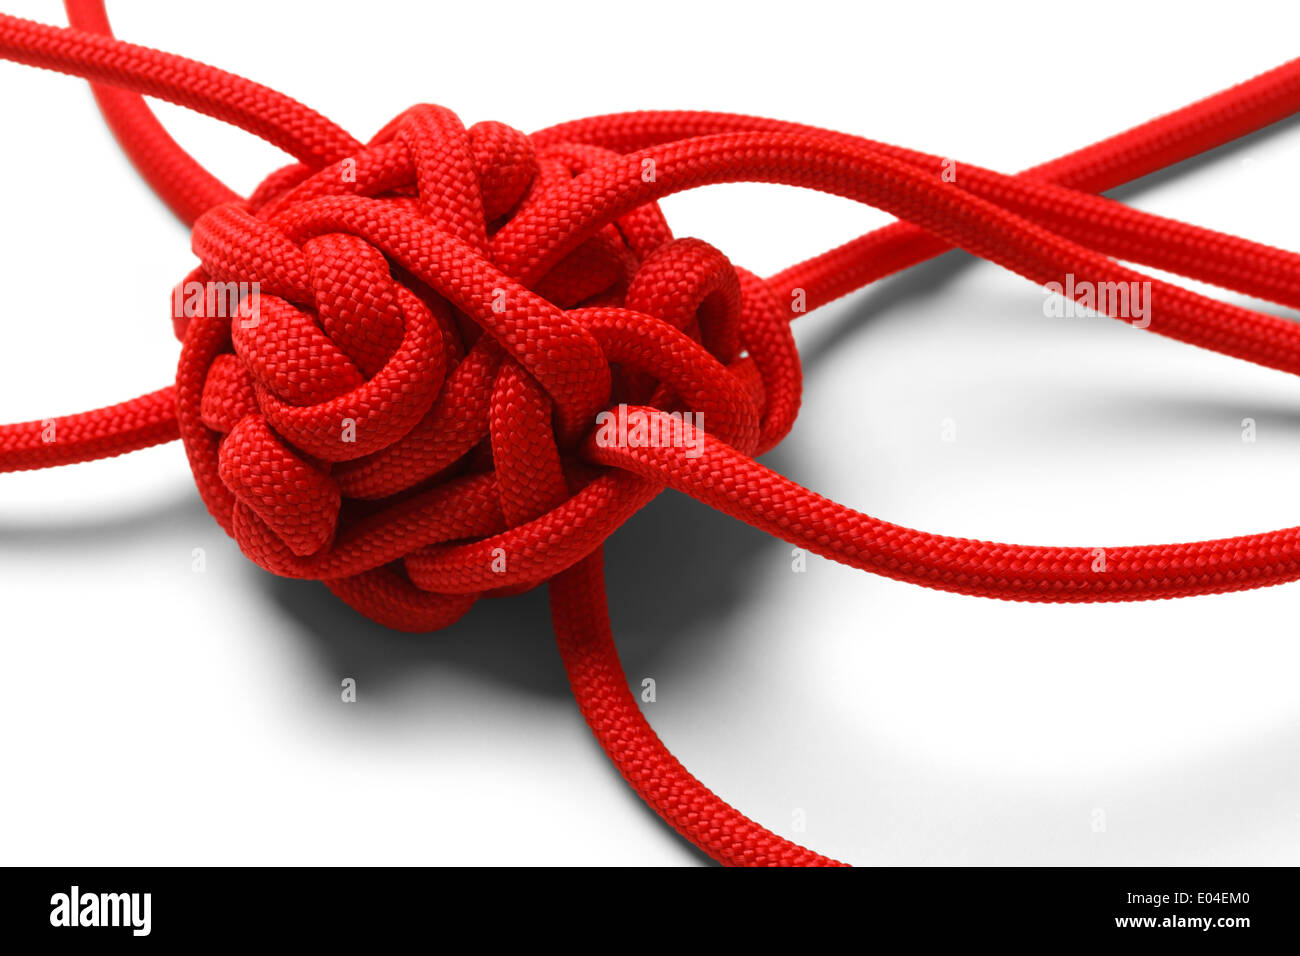 Red Rope in A Tangled Mess Isolated on White Background. - Stock Image